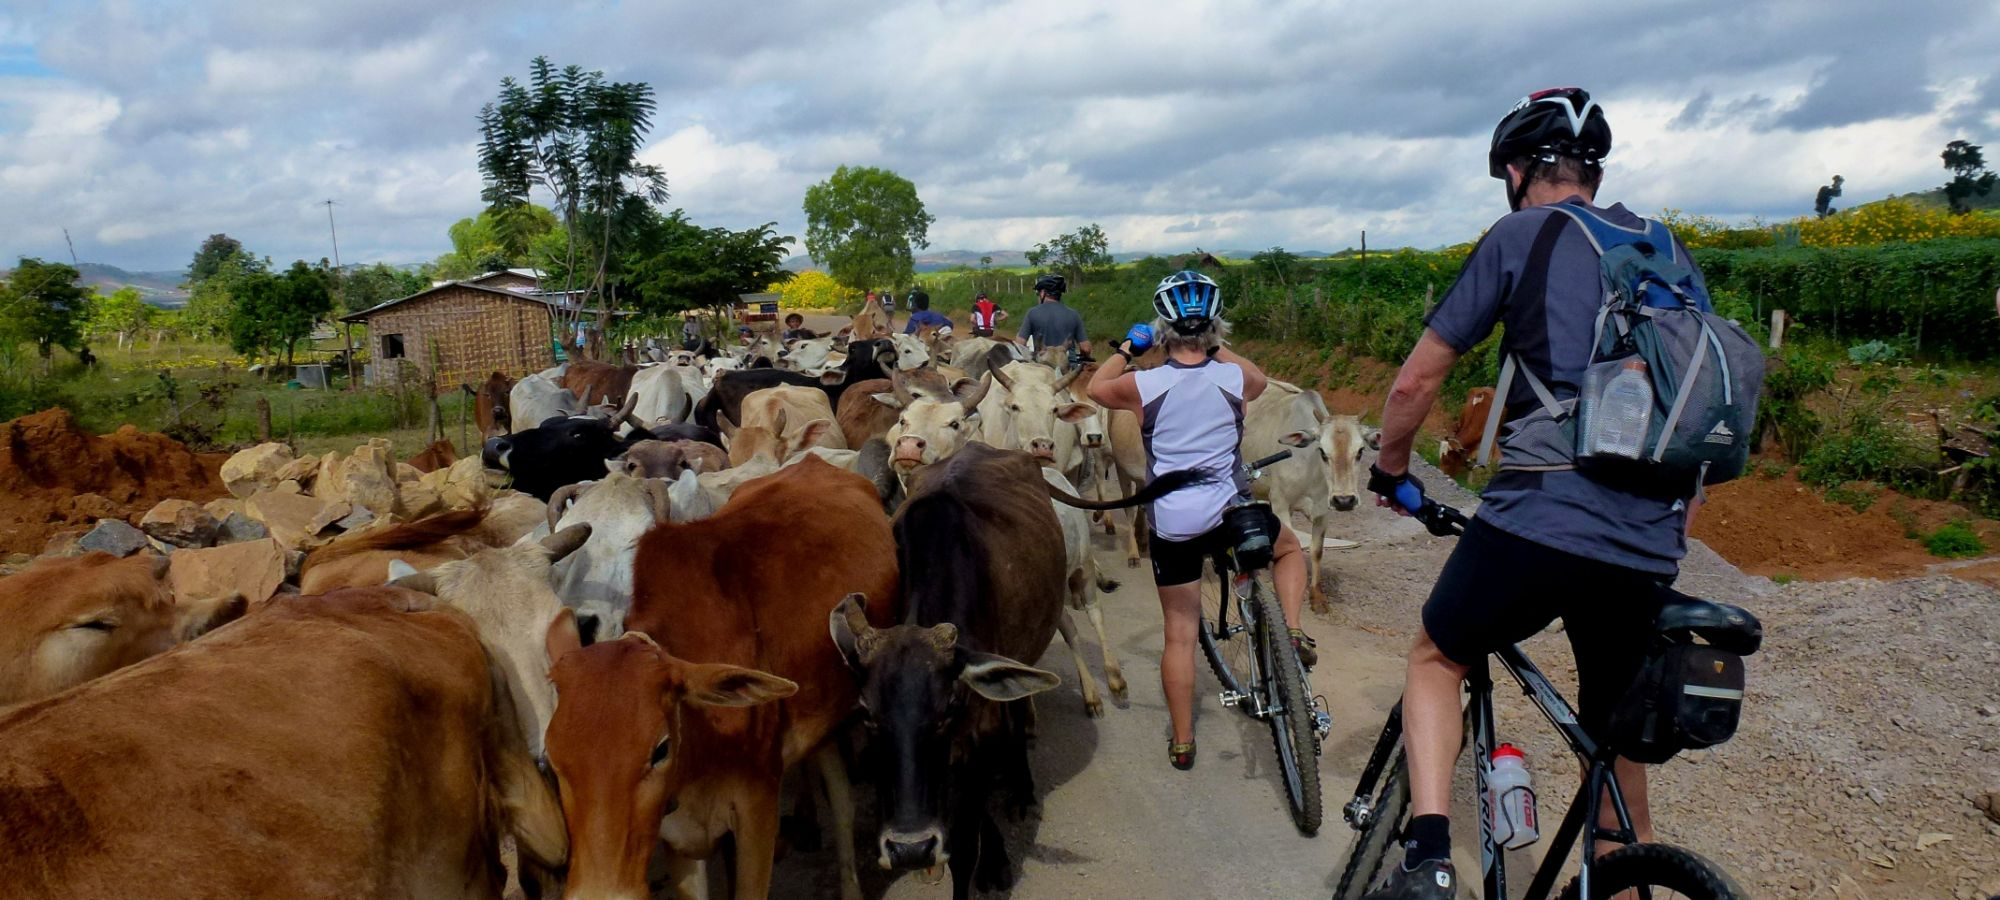 Photos from our Burma - Classic Cycling Holiday